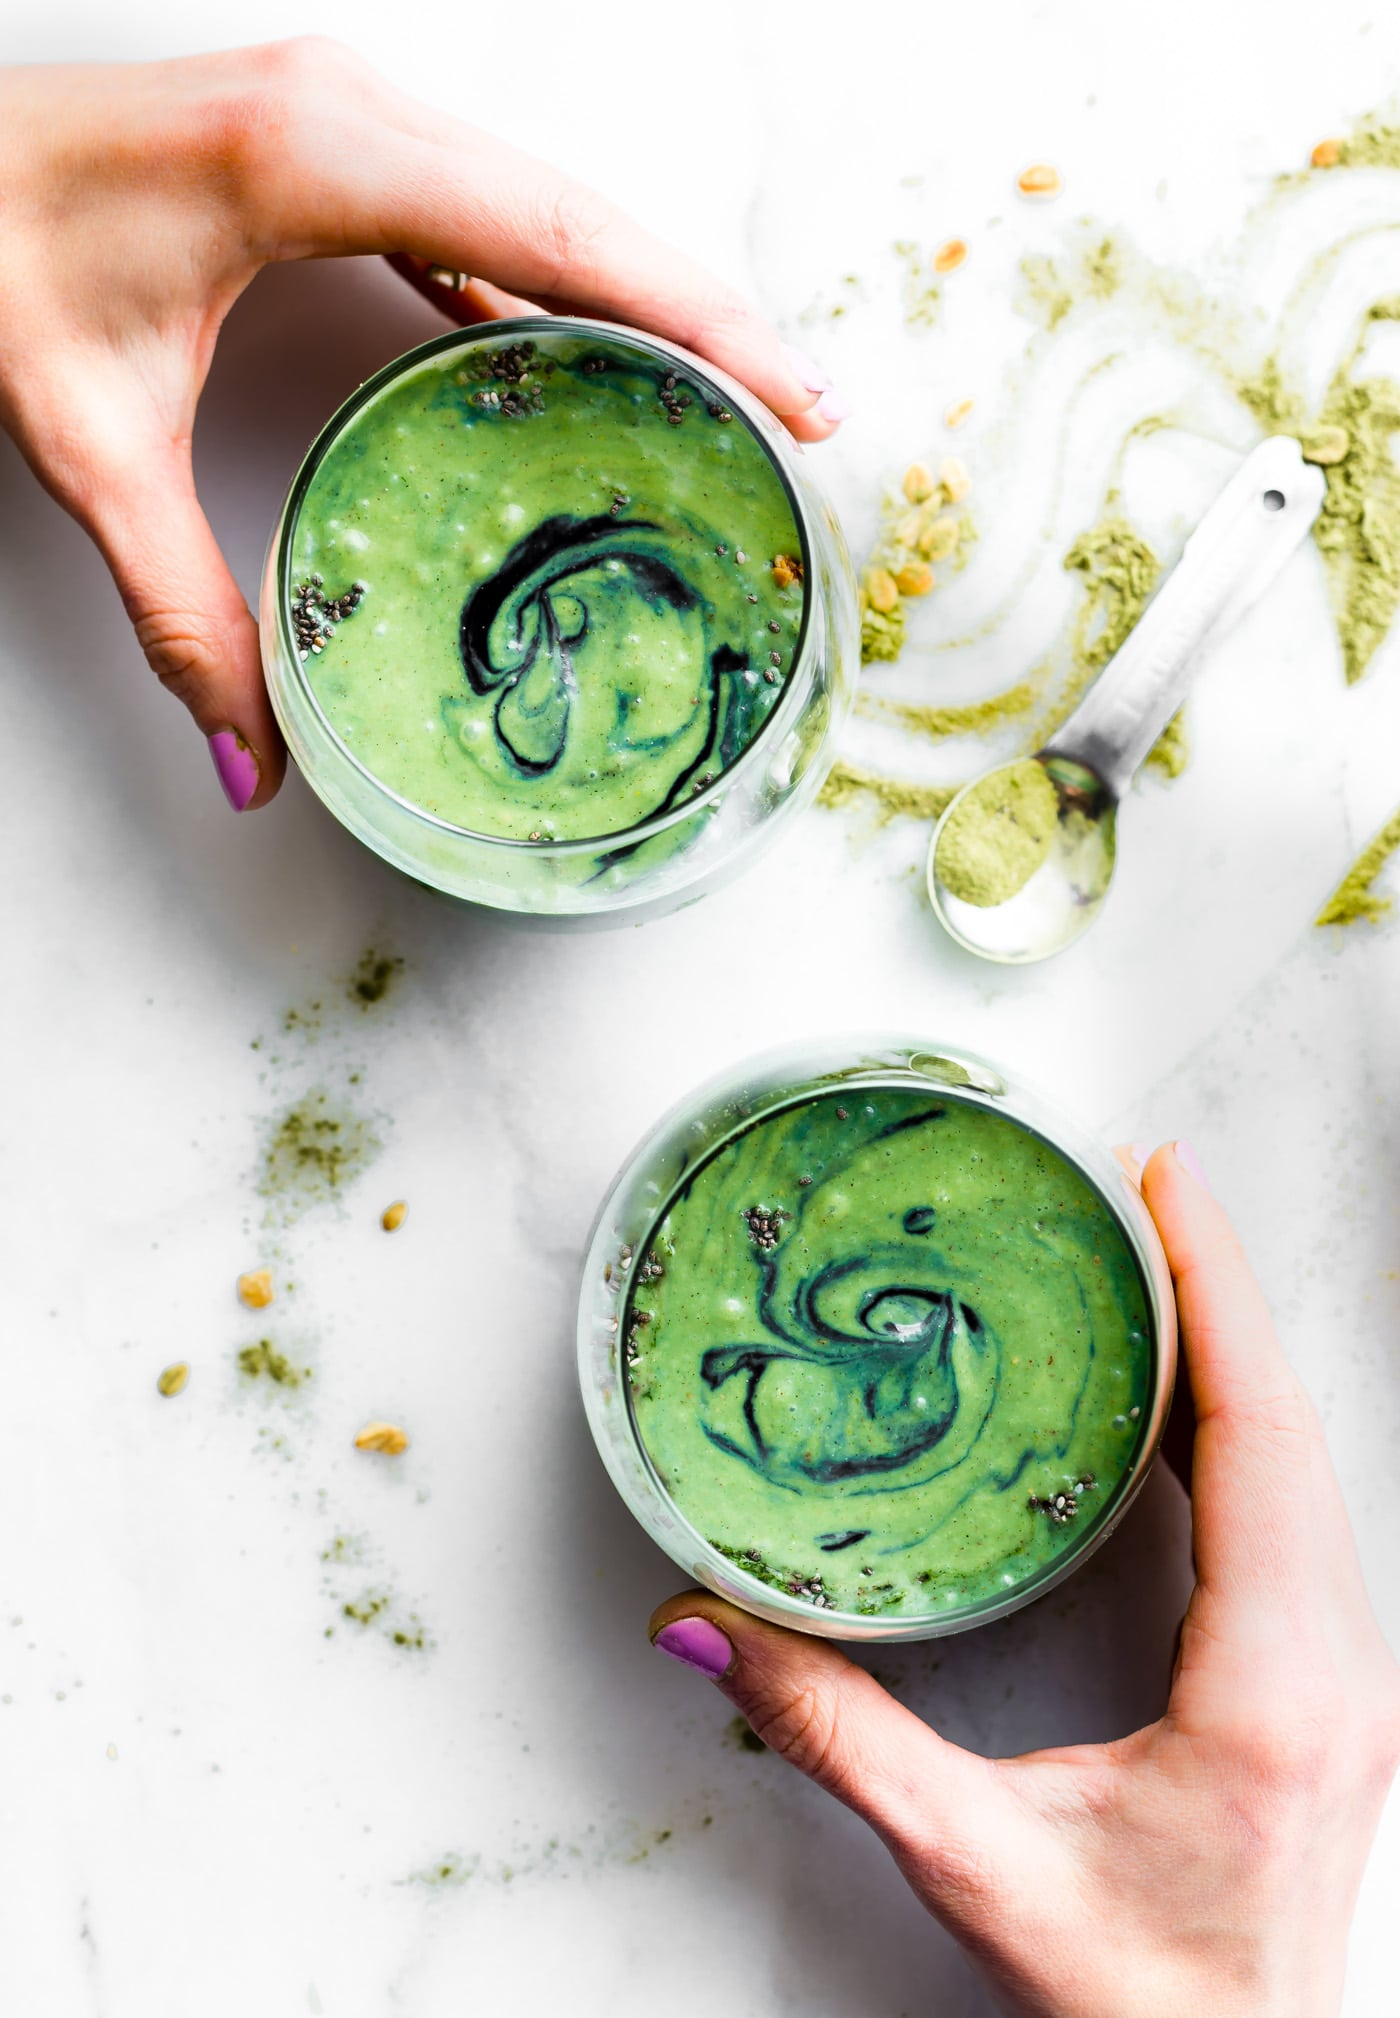 """CREAMYCOCONUT SPIRULINA SUPERFOOD SMOOTHIE recipe isan easy way to boost Energy and Protein intake with real food. No protein powder needed. A """"balanced"""" creamy Superfood smoothie with coconut milk, spirulina, fruit, avocado, ginger root, and a pinch antioxidant rich spices! Paleo and Vegan friendly"""